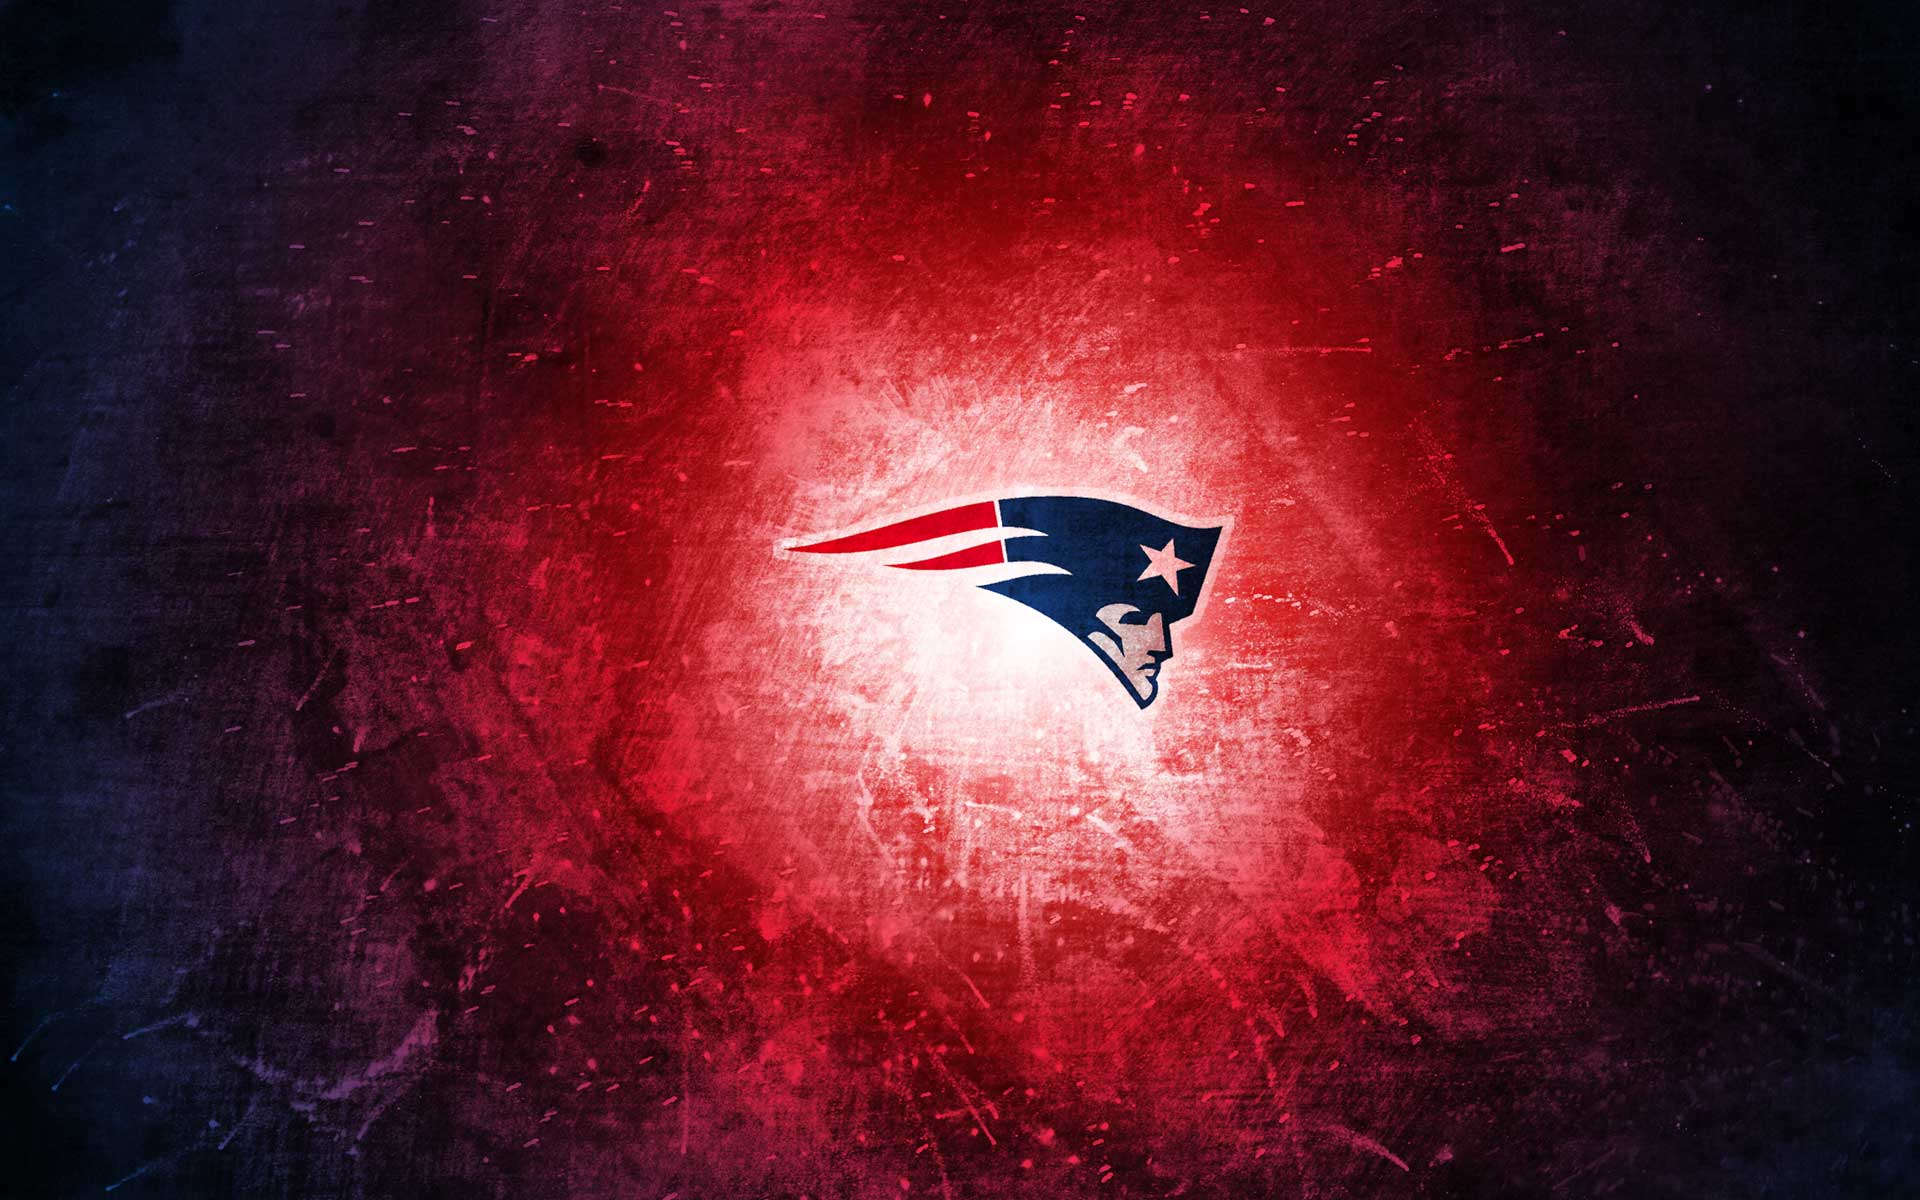 New England Patriots wallpaper background New England Patriots 1920x1200